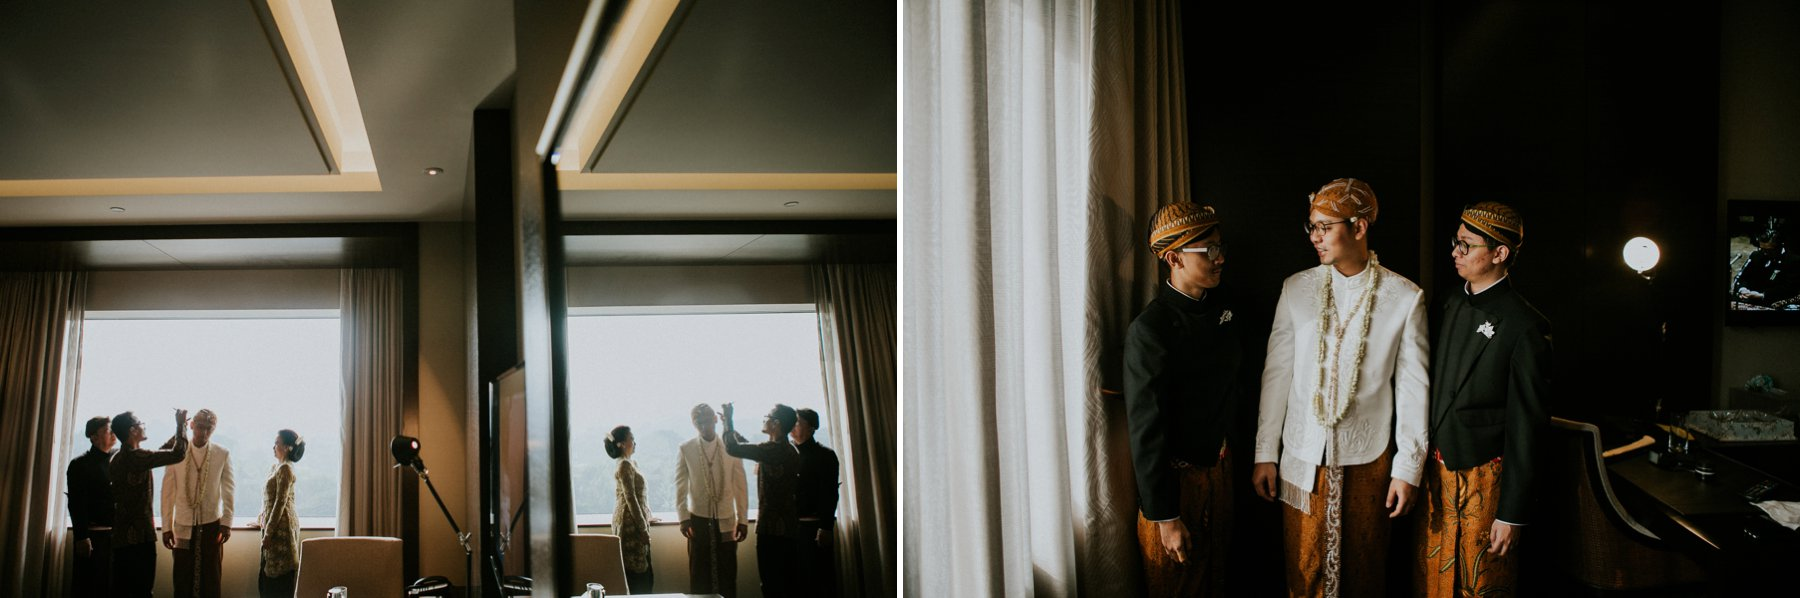 Sampoerna_Strategic_Wedding_Antijitters_Photo_0025